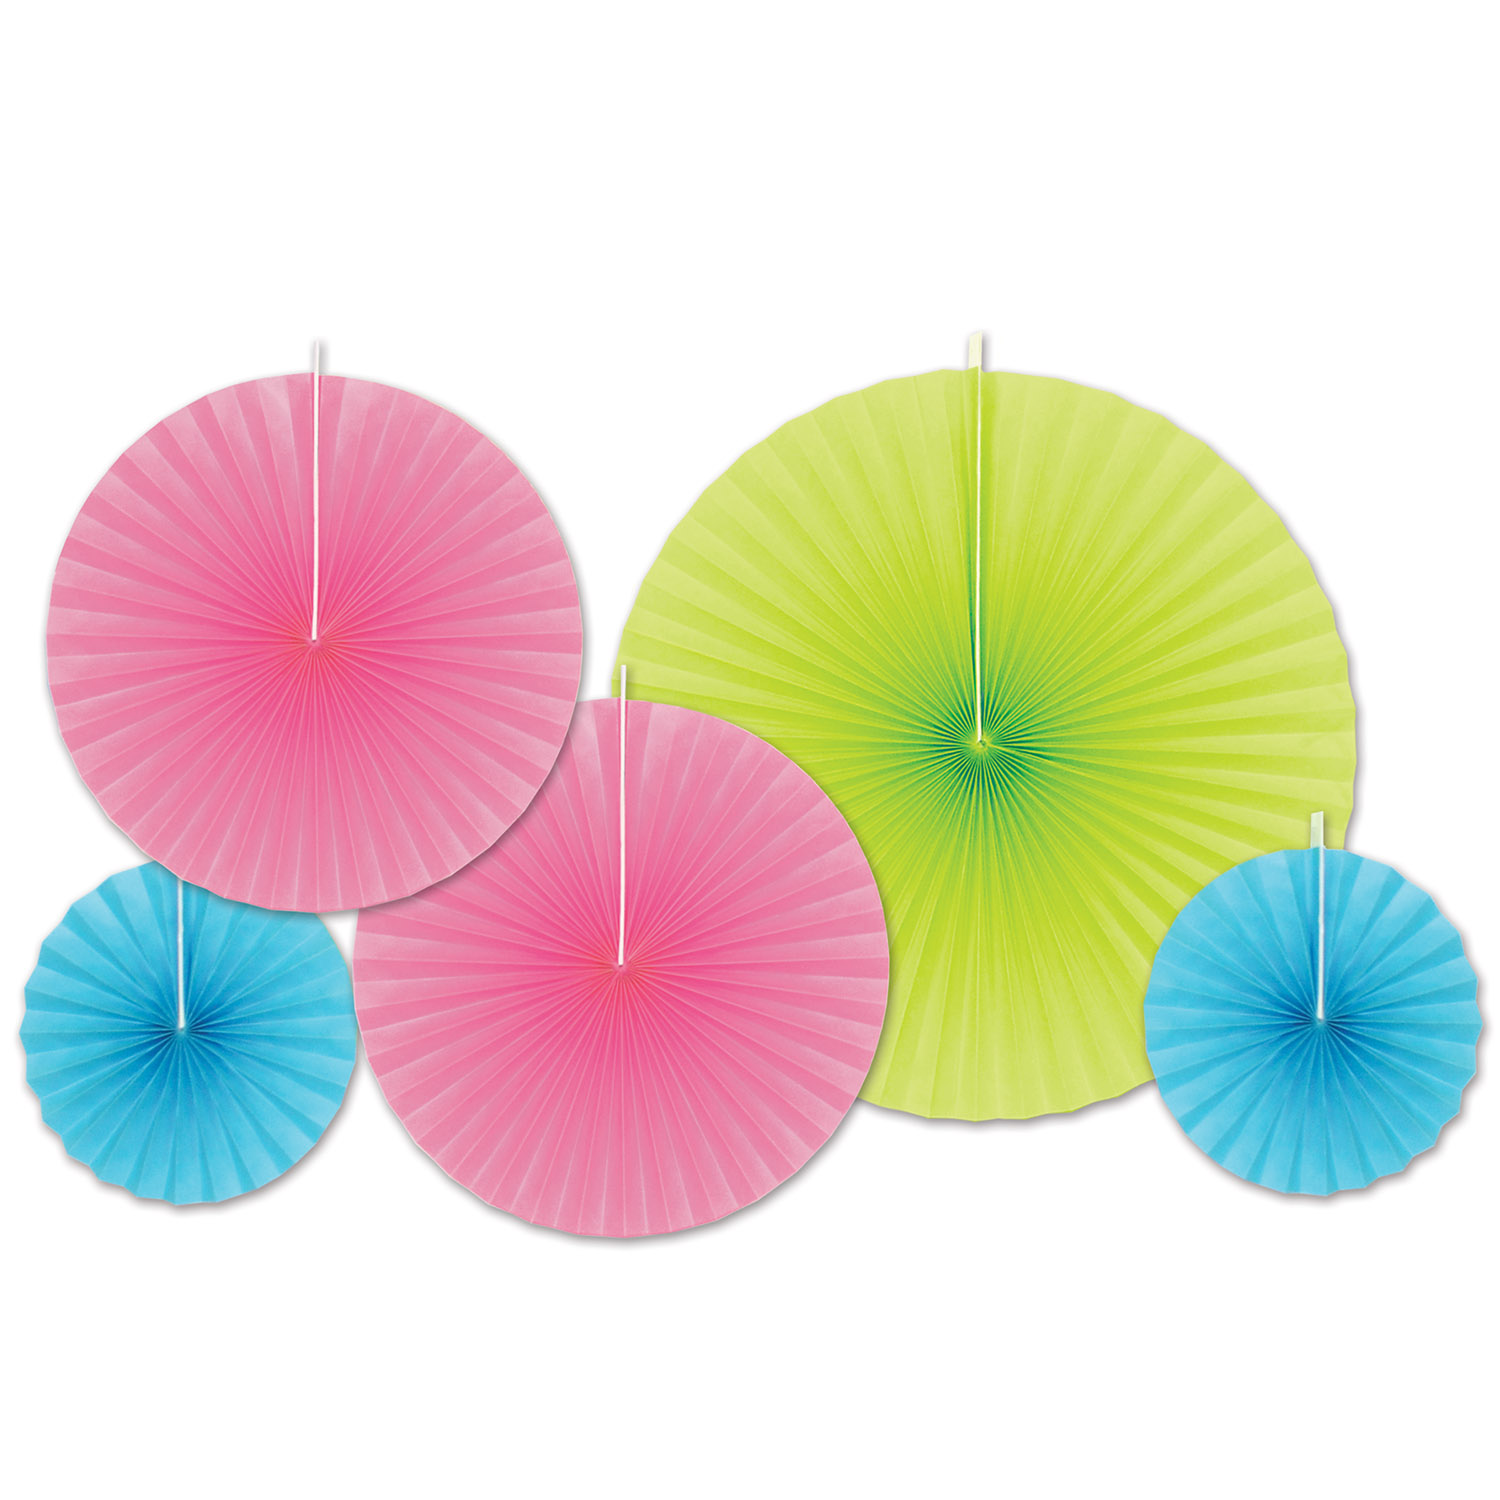 Assorted sized paper accordion fans in lime green, pink, and light blue